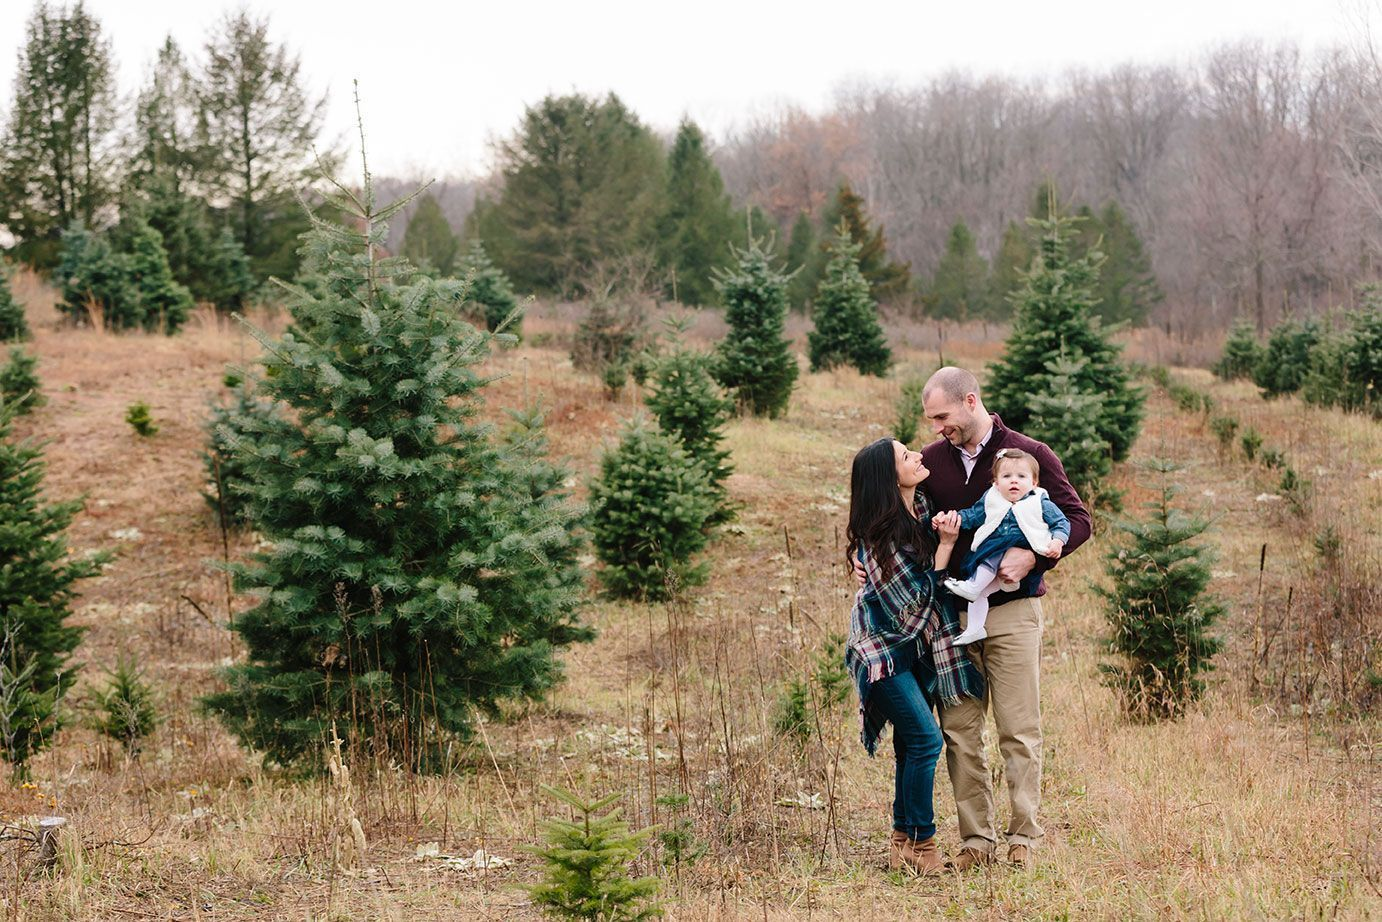 Winter Family Photography In Michigan Winterfamilyphotography Caledonia Christmas Tree Farm Winter Family Photography Winter Family Pictures Winter Family